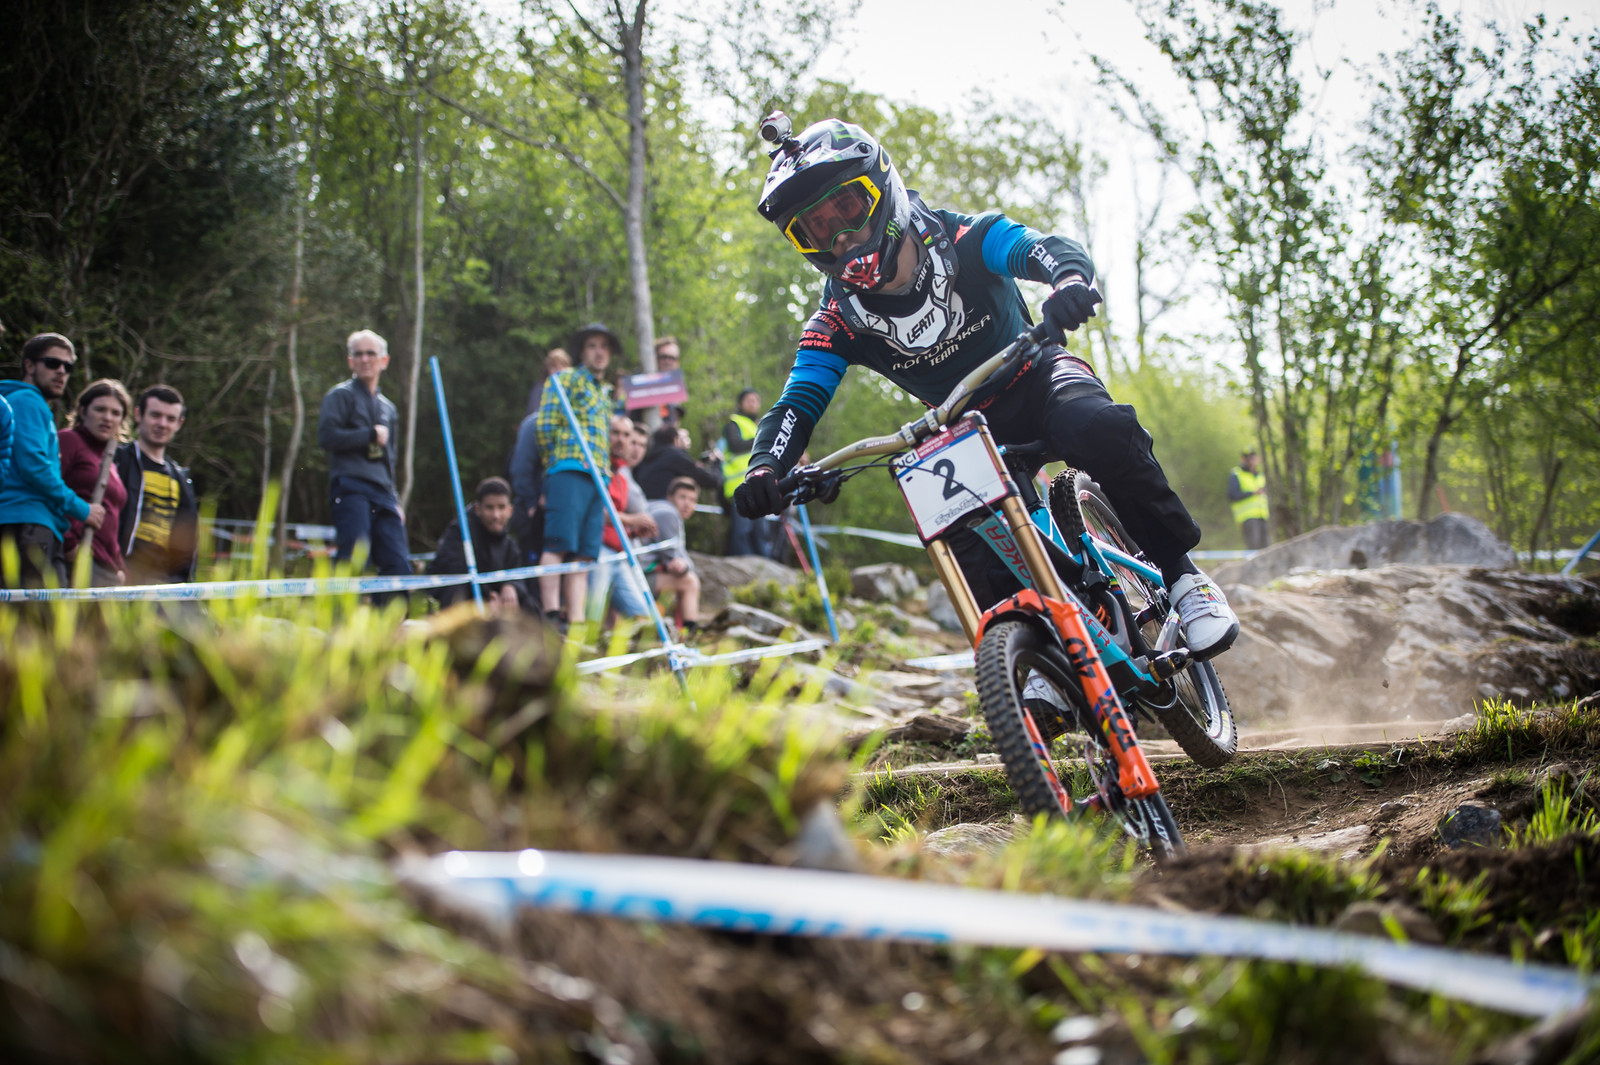 Danny Hart, Lourdes Race Morning Practice - iceman2058 - Mountain Biking Pictures - Vital MTB